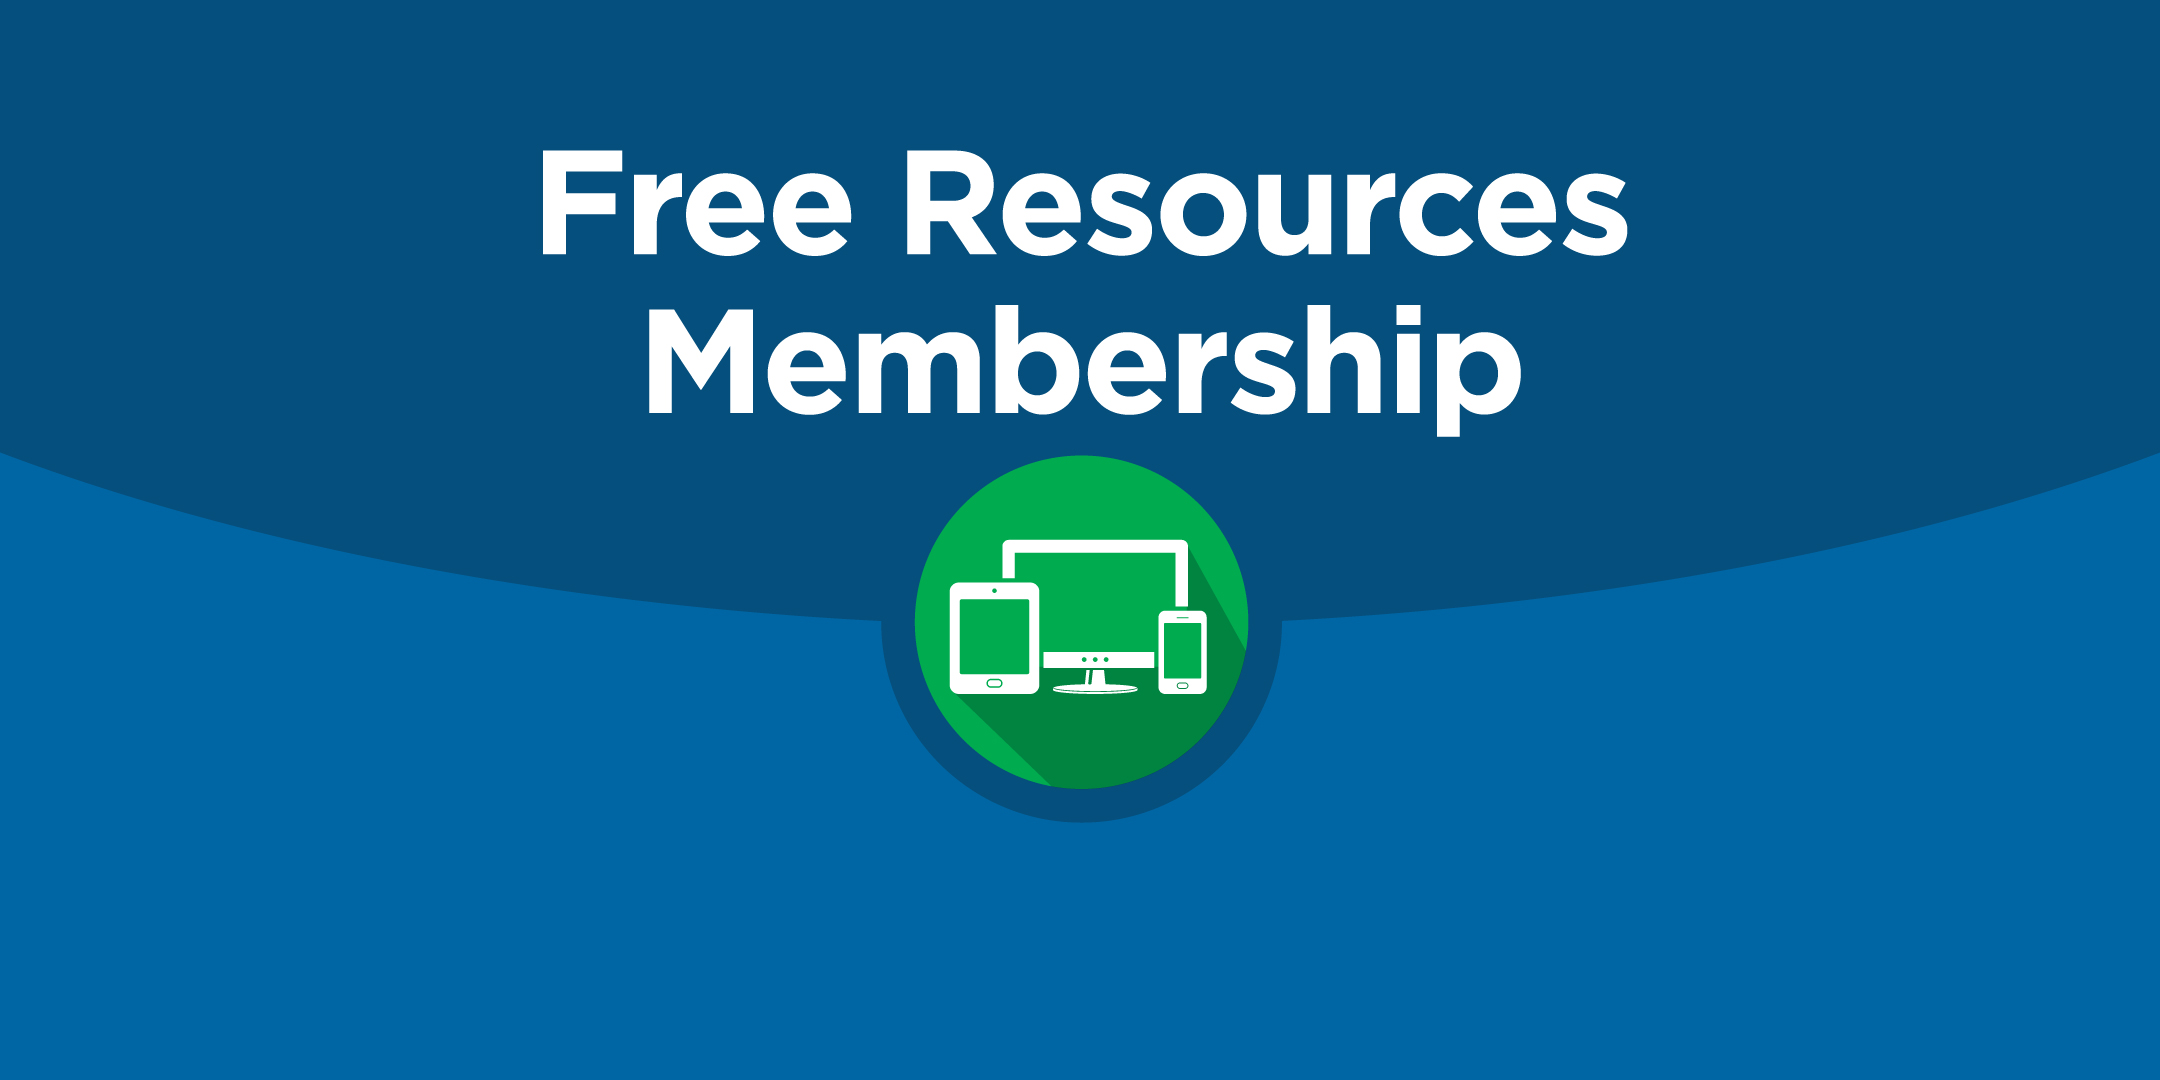 Free Resources Membership